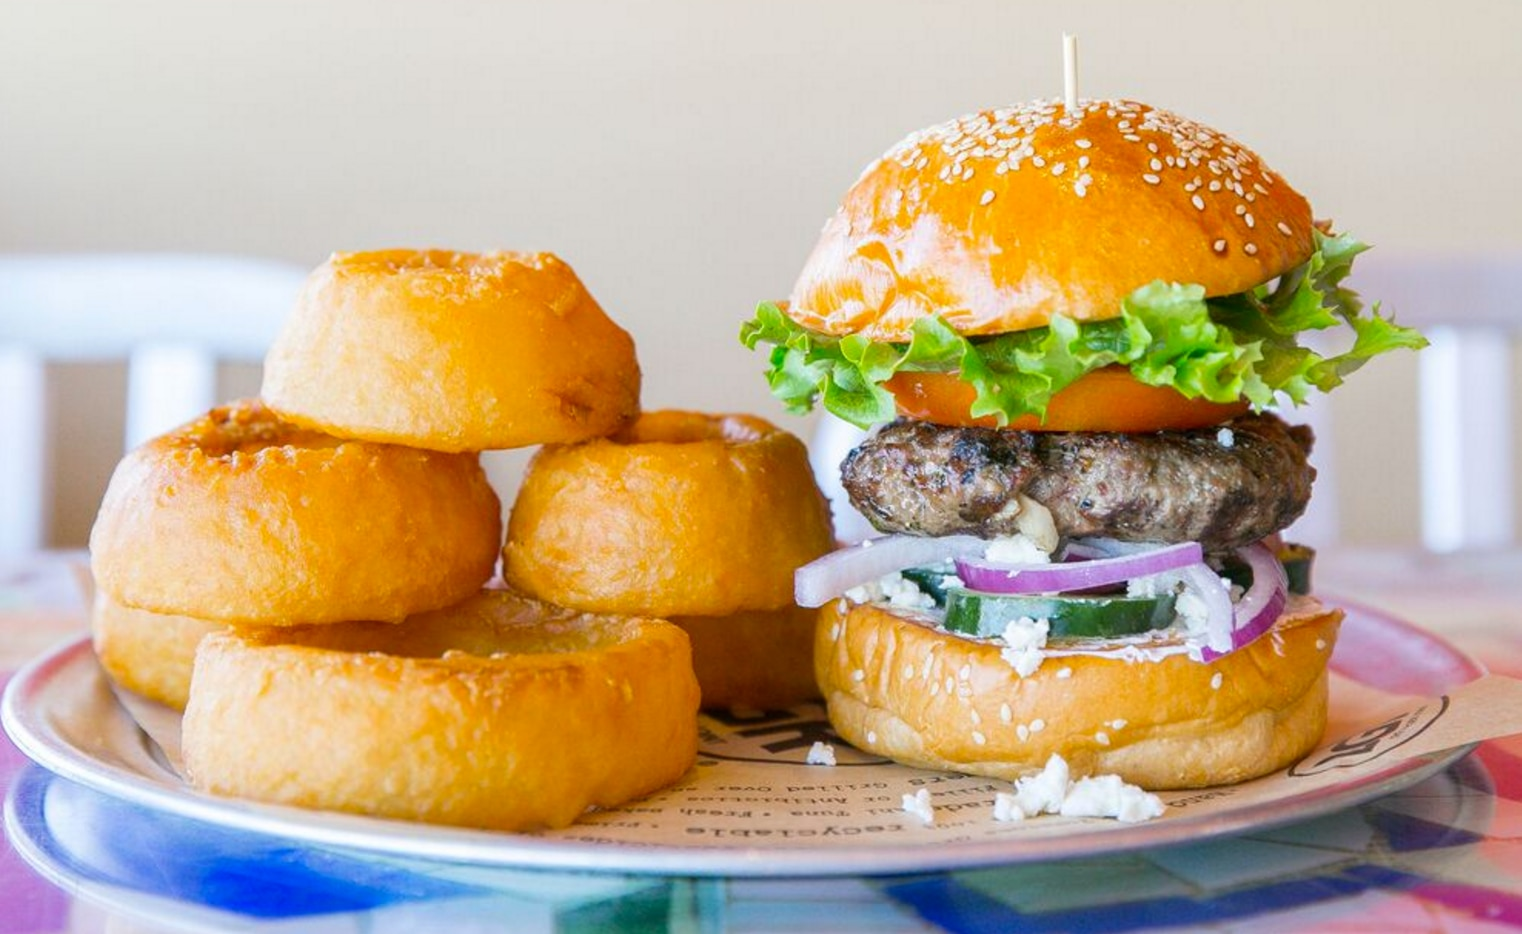 This burger could land on your doorstep.